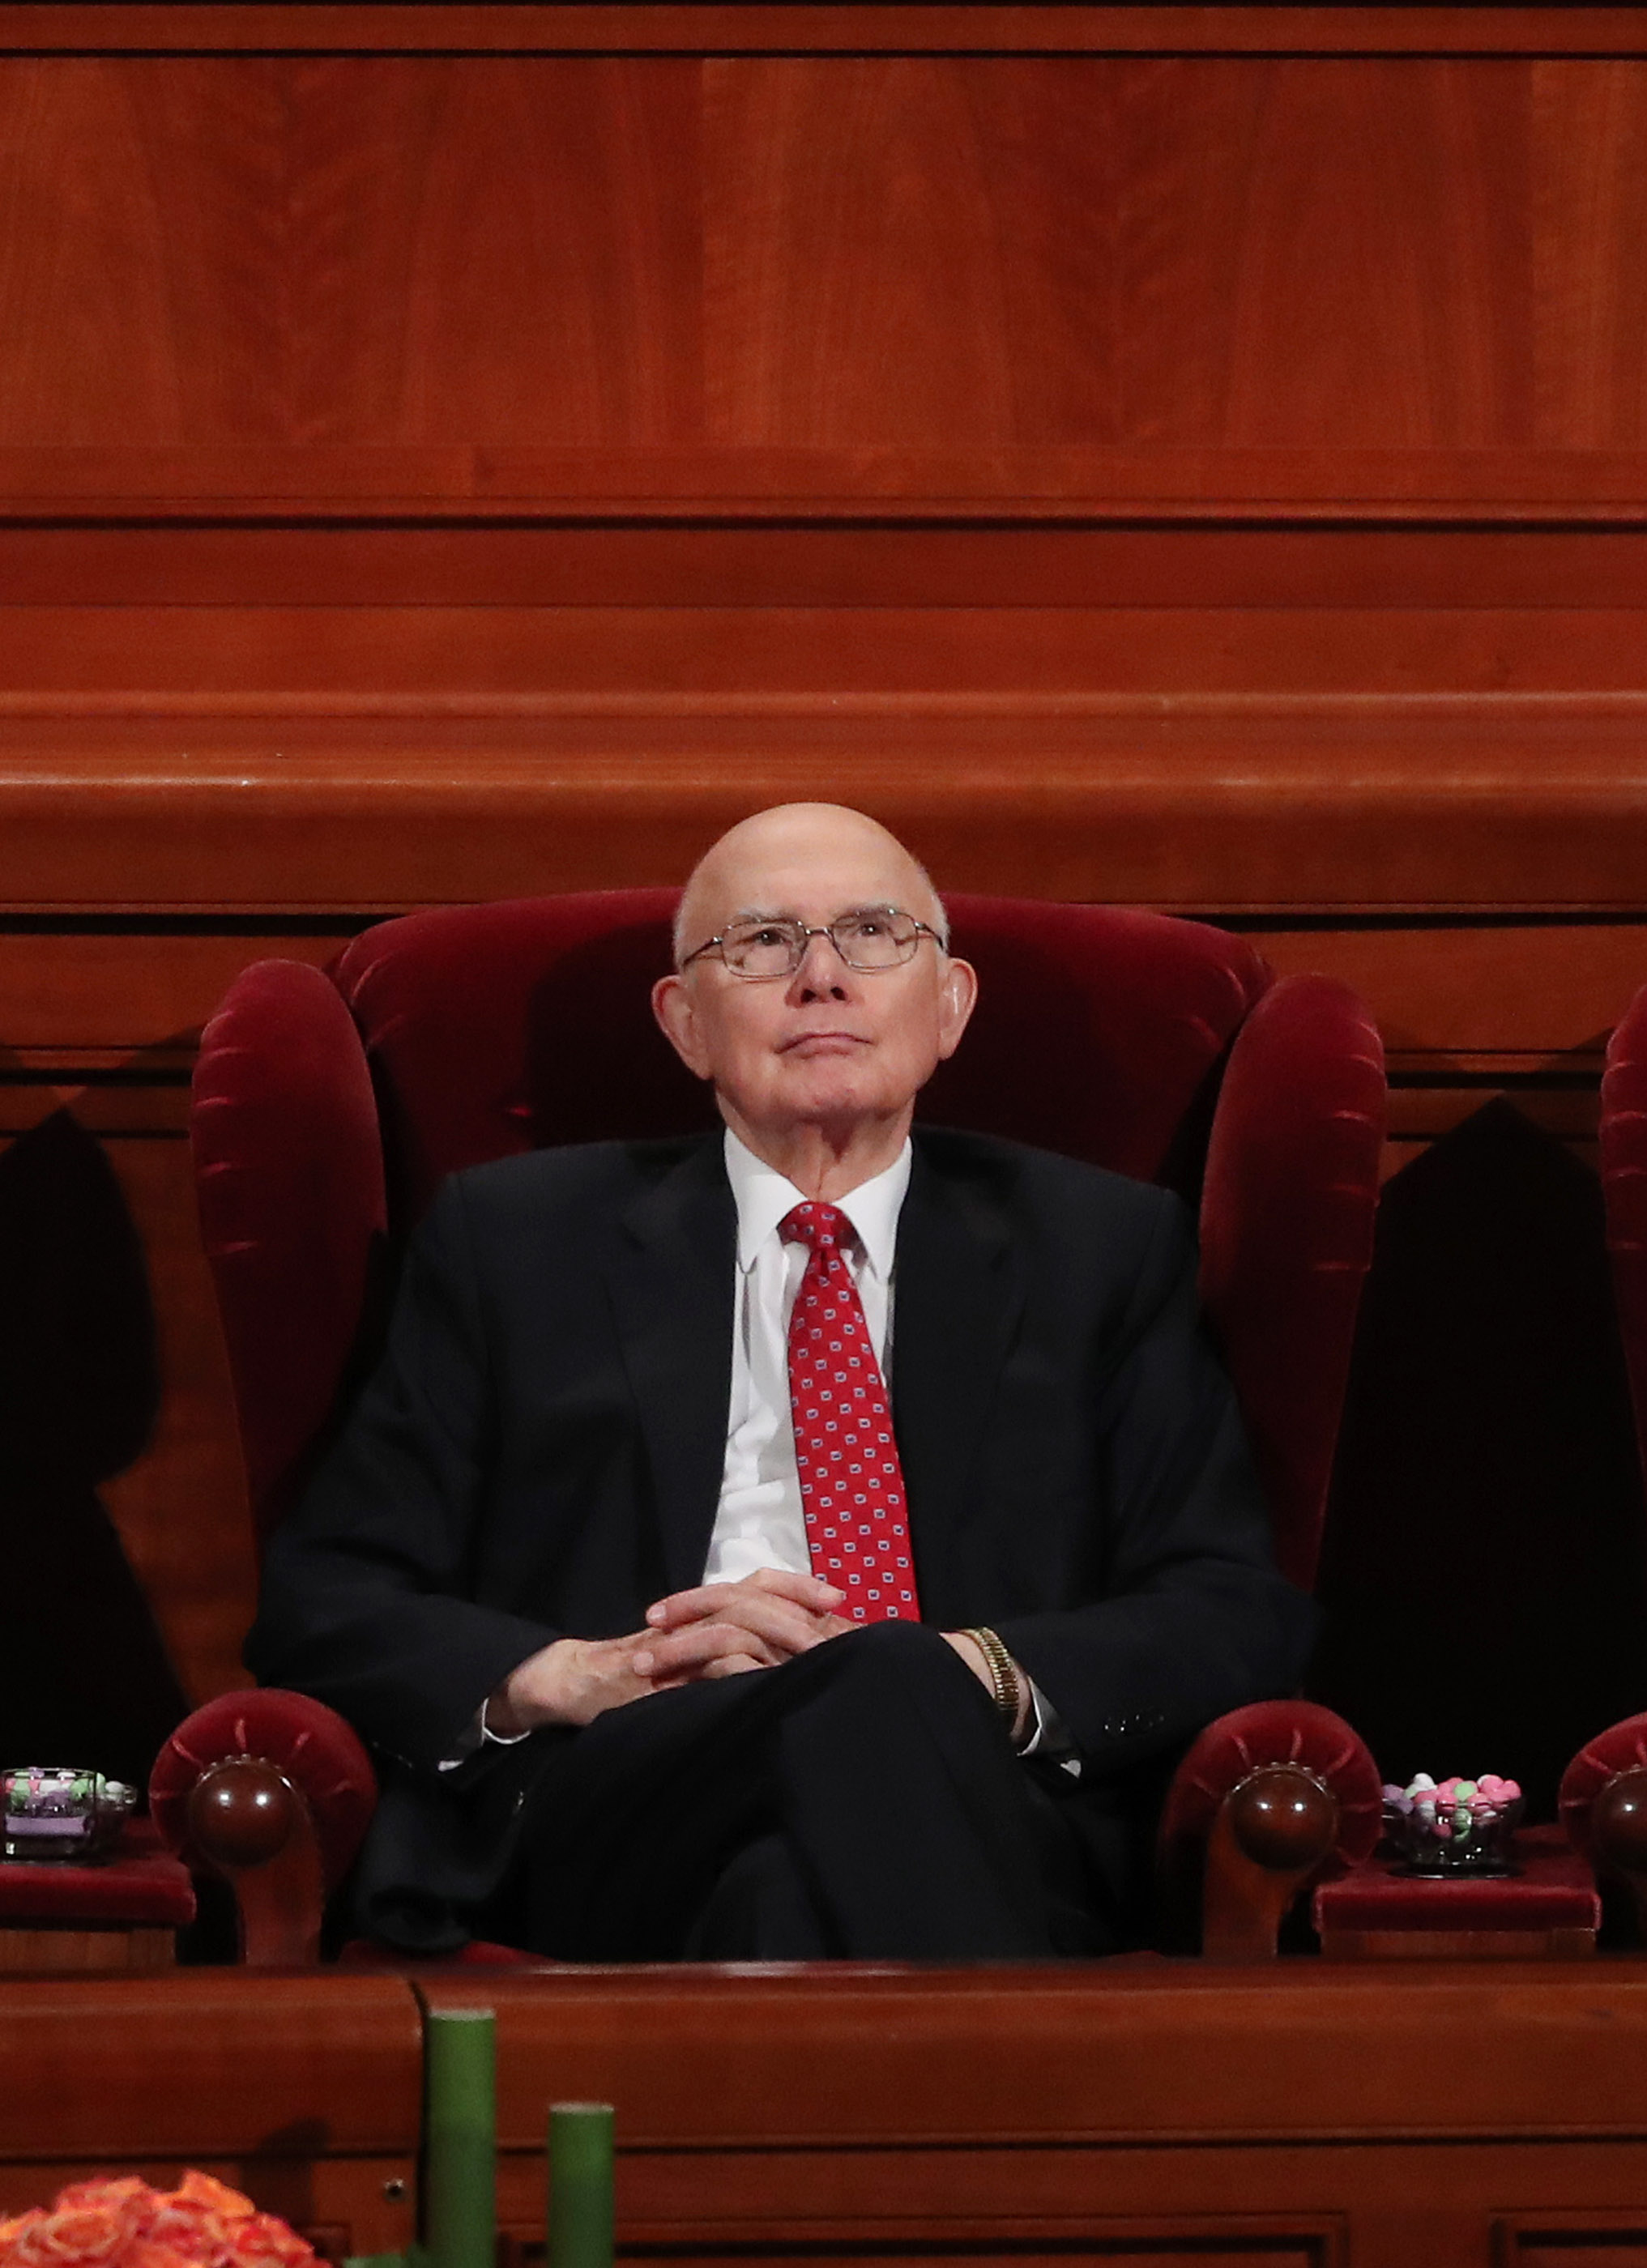 President Dallin H. Oaks, first counselor in the First Presidency, looks out to attendees during the 188th Semiannual General Conference of The Church of Jesus Christ of Latter-day Saints in Salt Lake City on Sunday, Oct. 7, 2018.